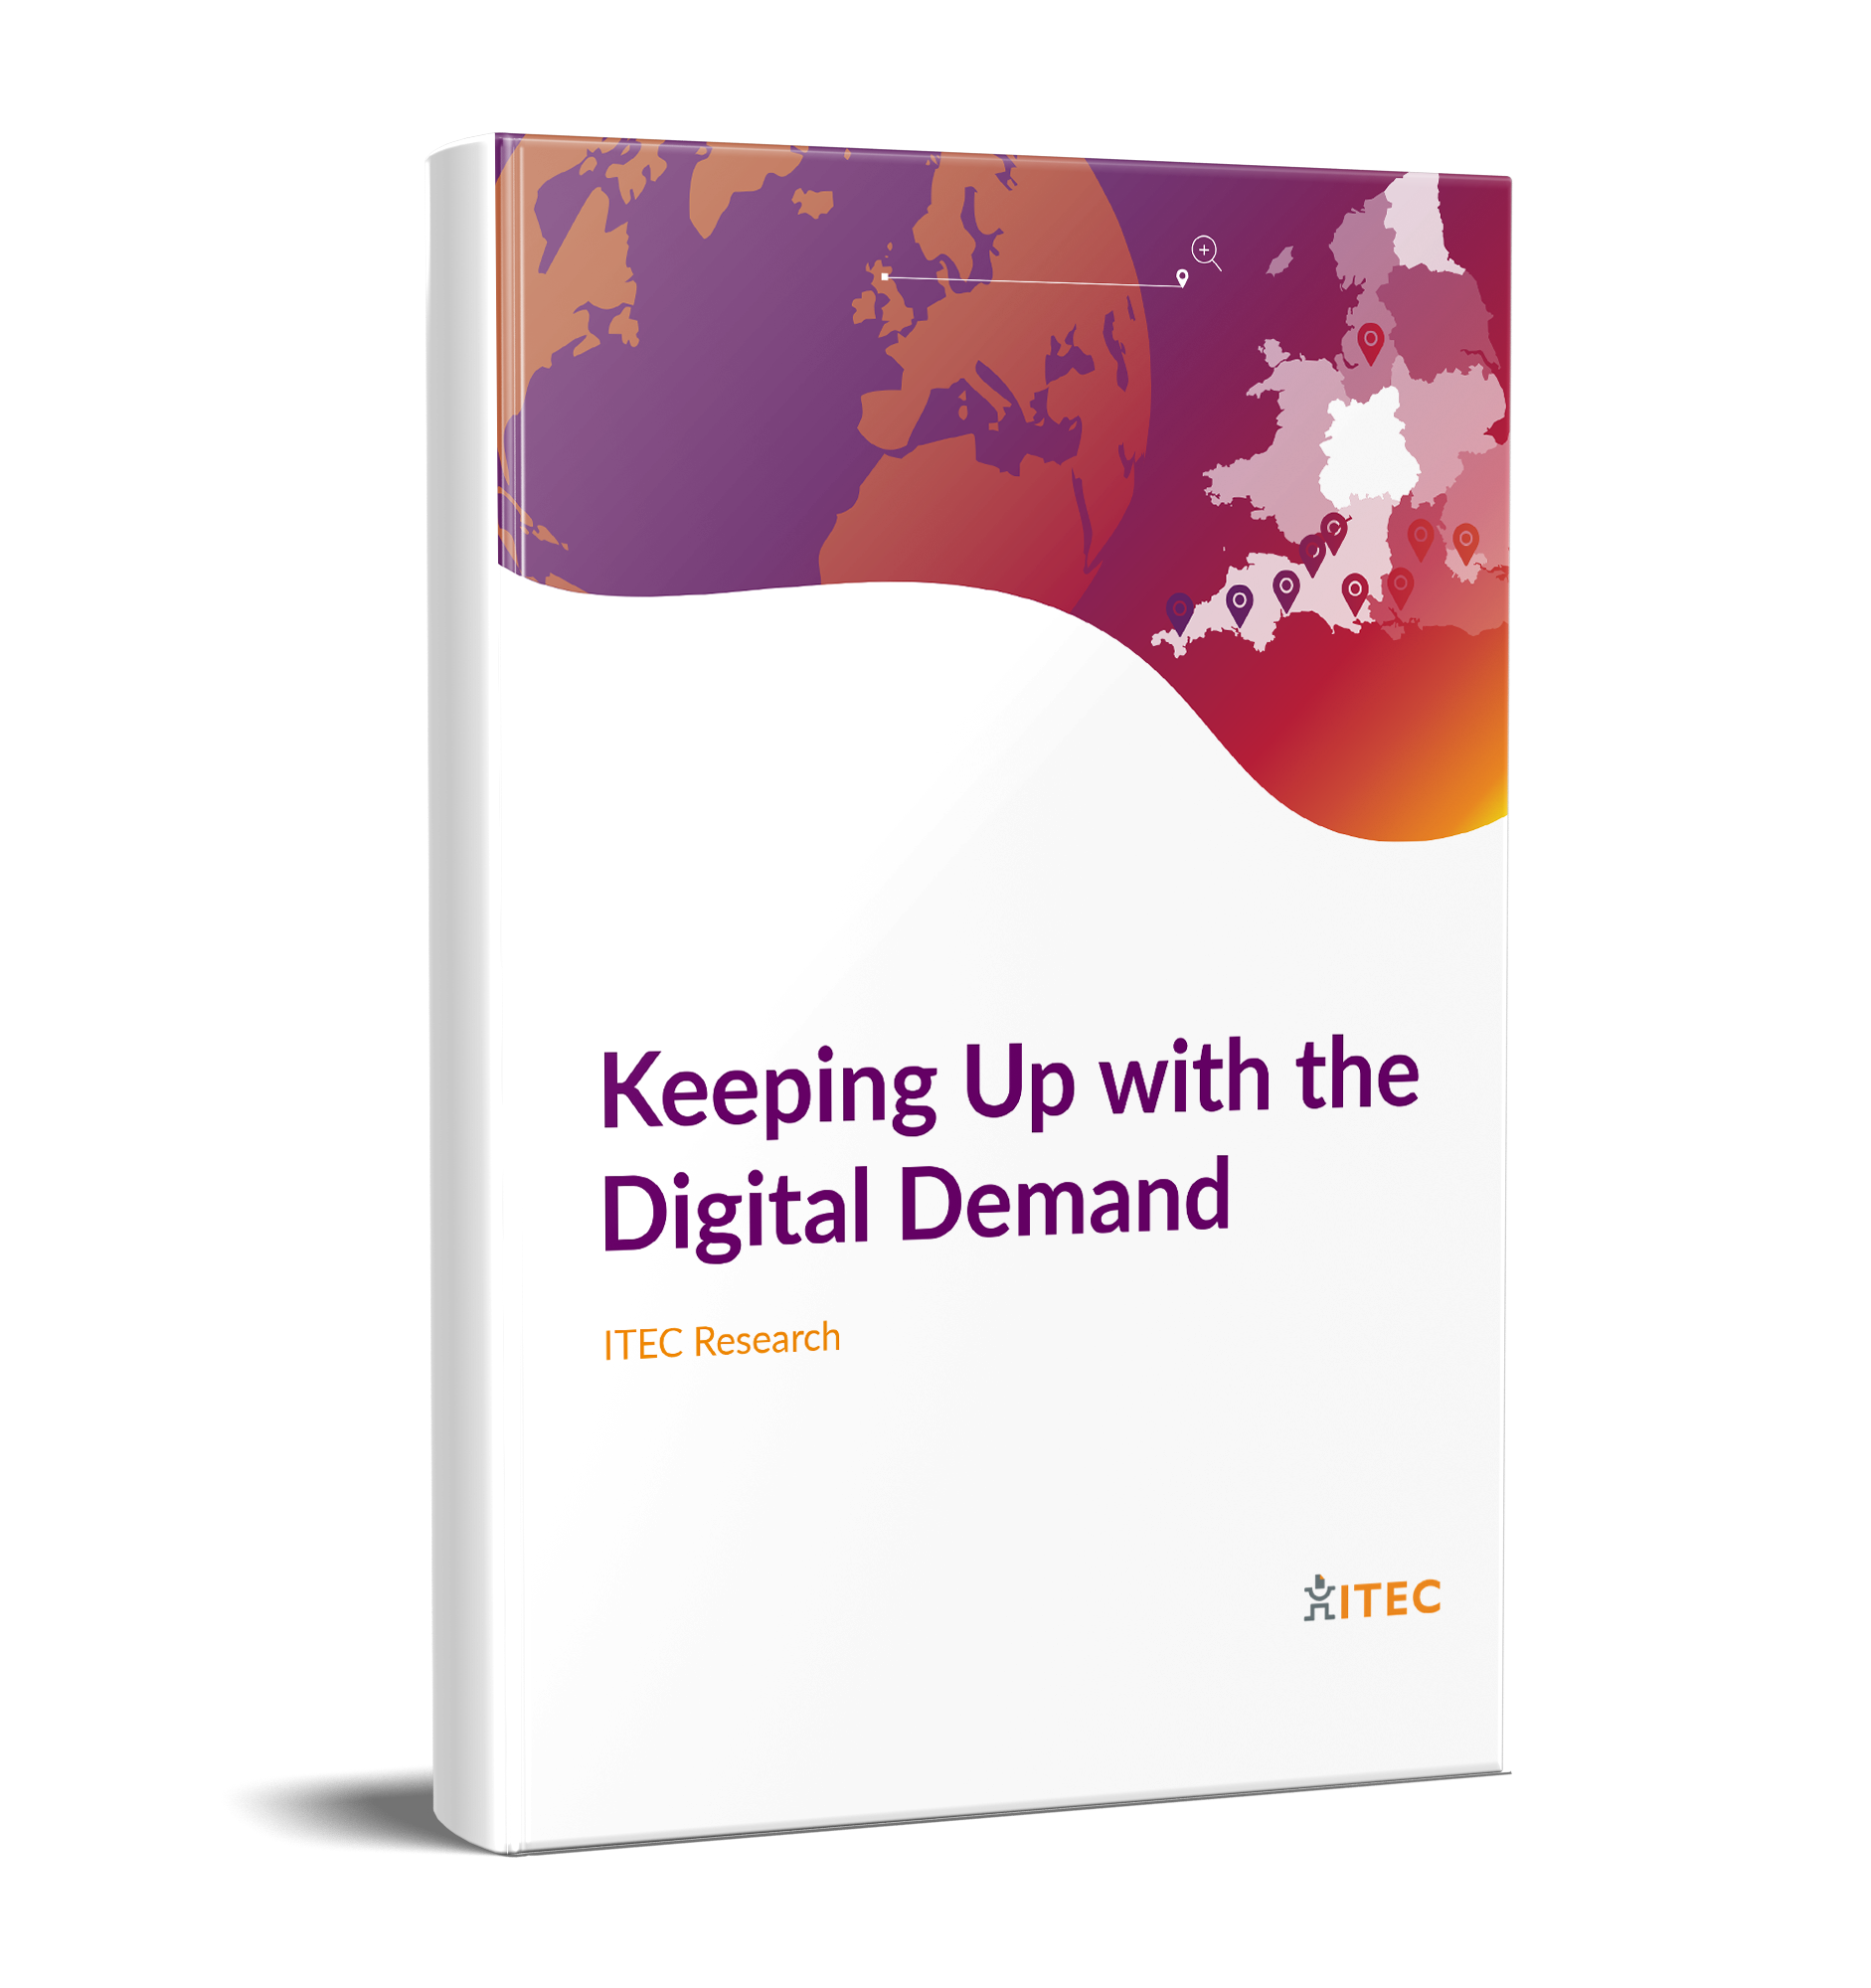 Download ITEC Report: Keeping Up with the Digital Demand